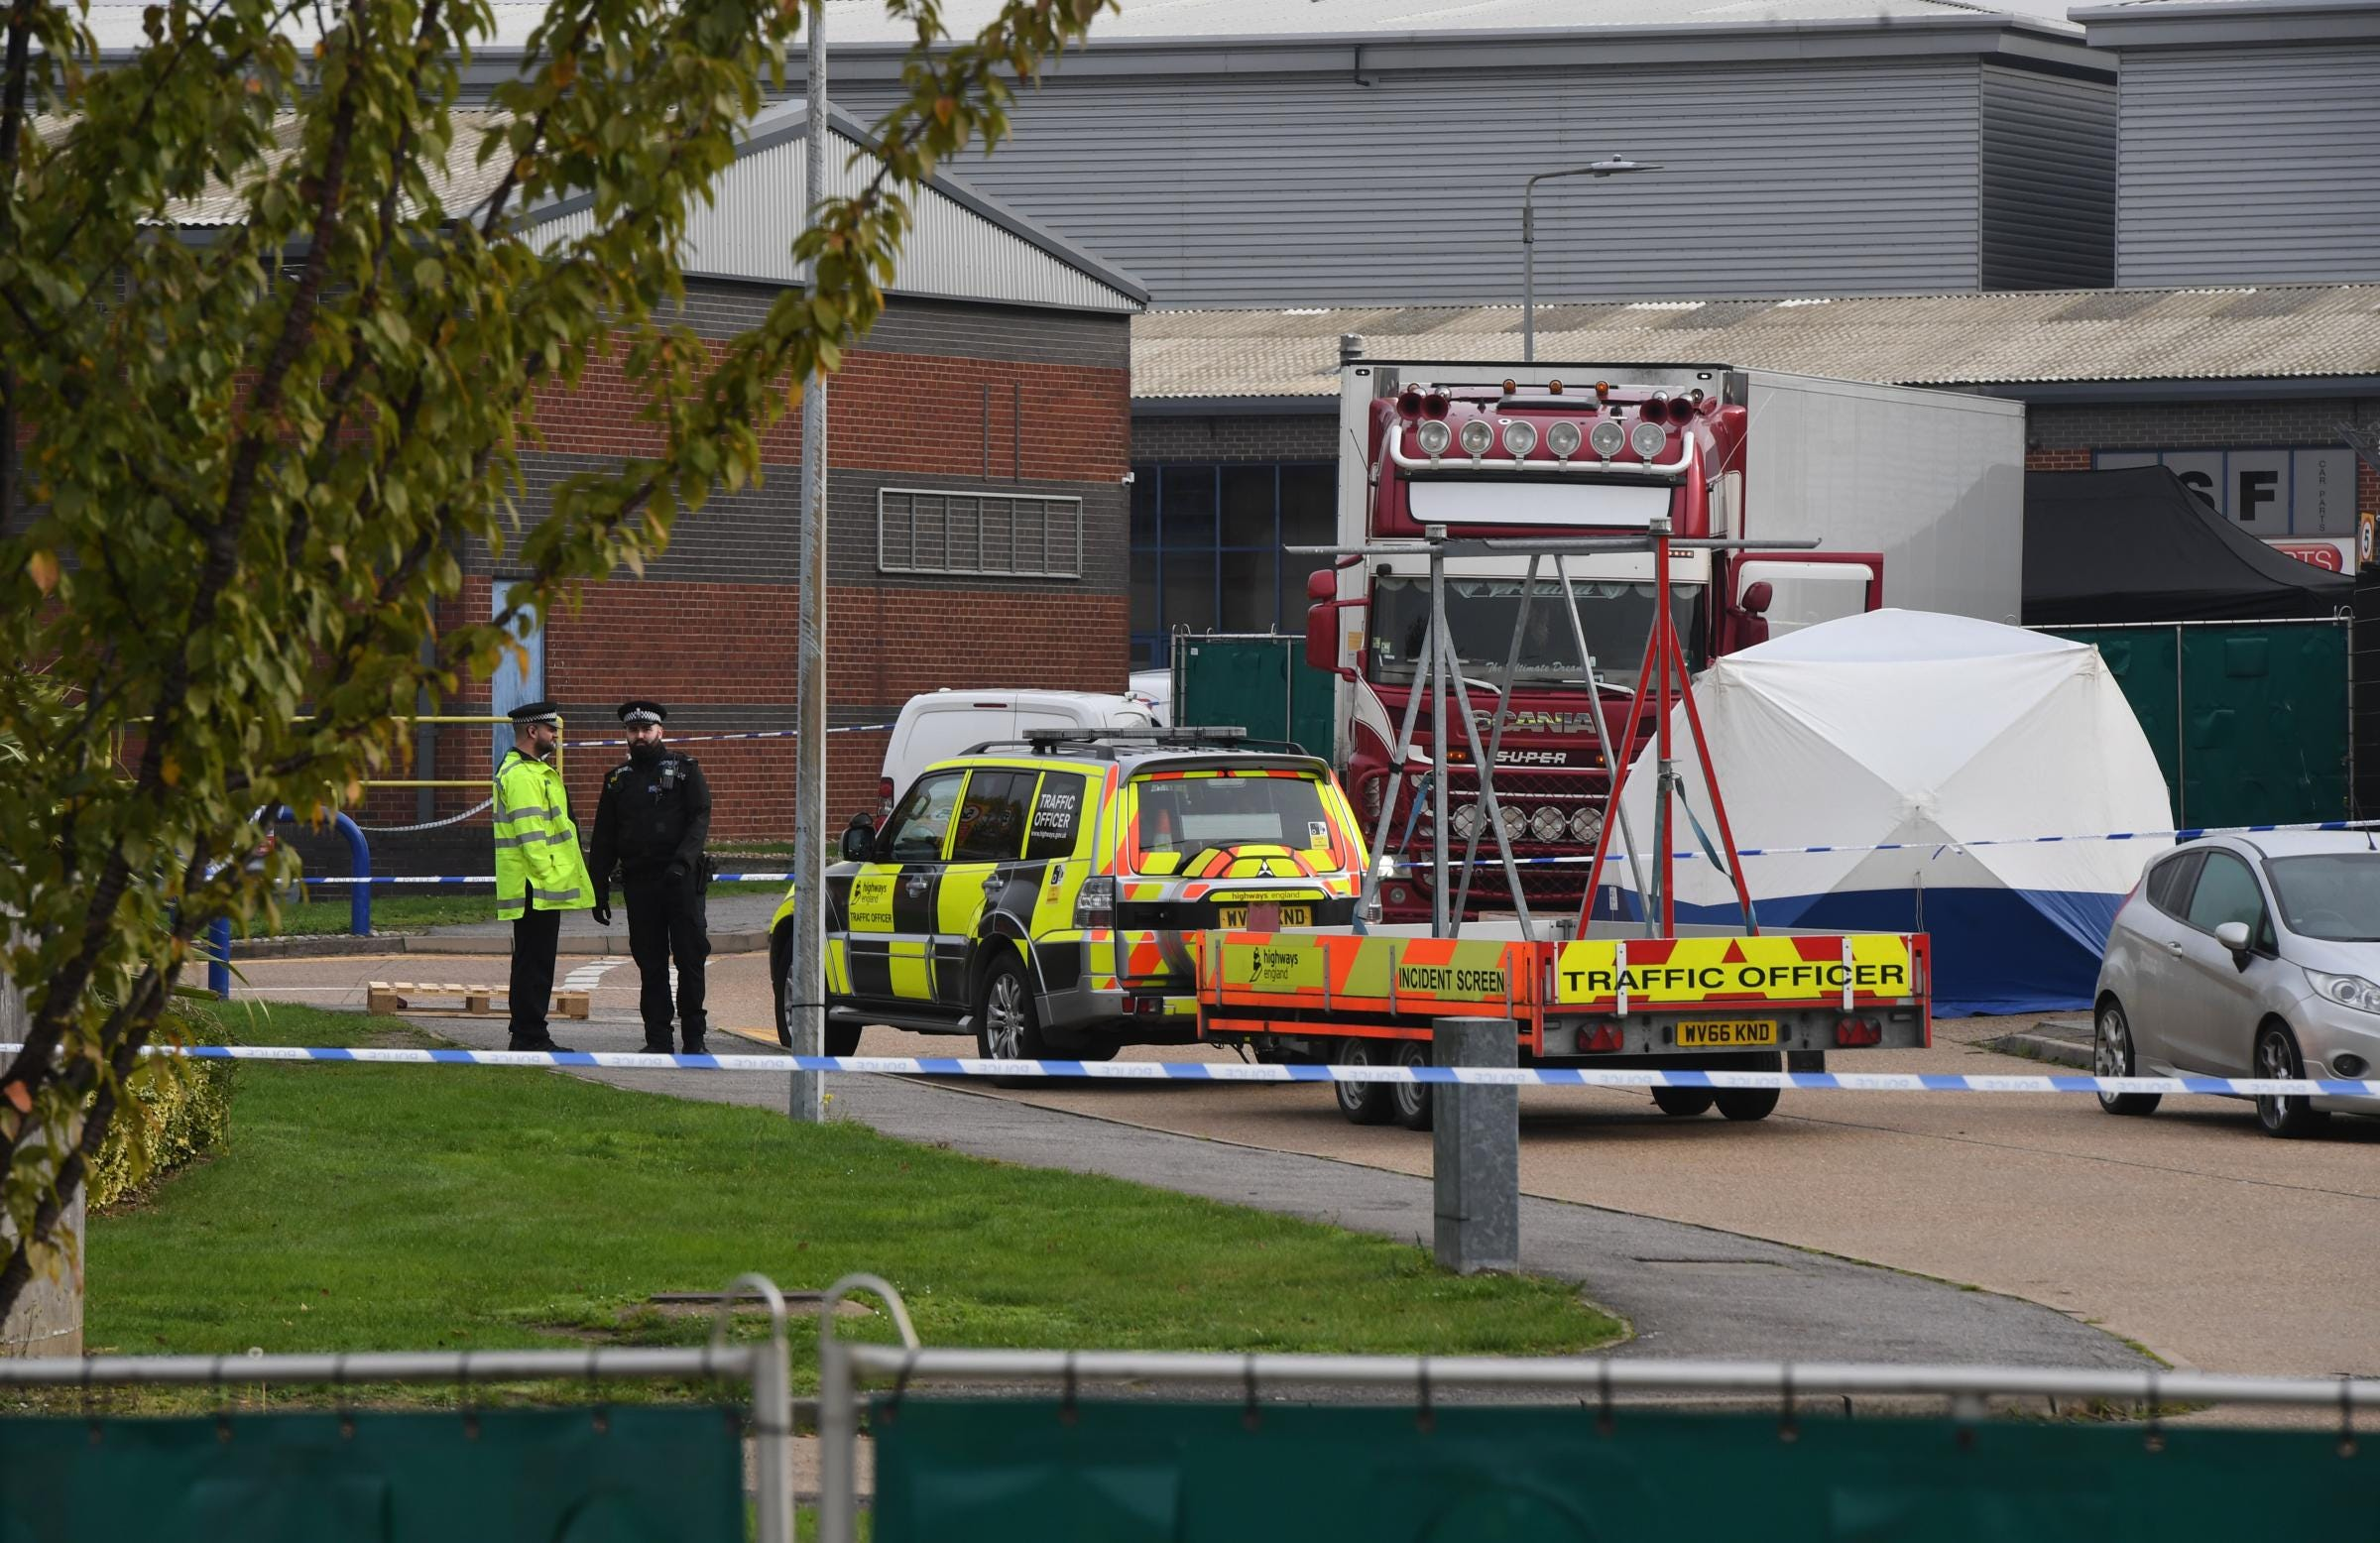 39 bodies discovered in truck in England, opening homicide investigation